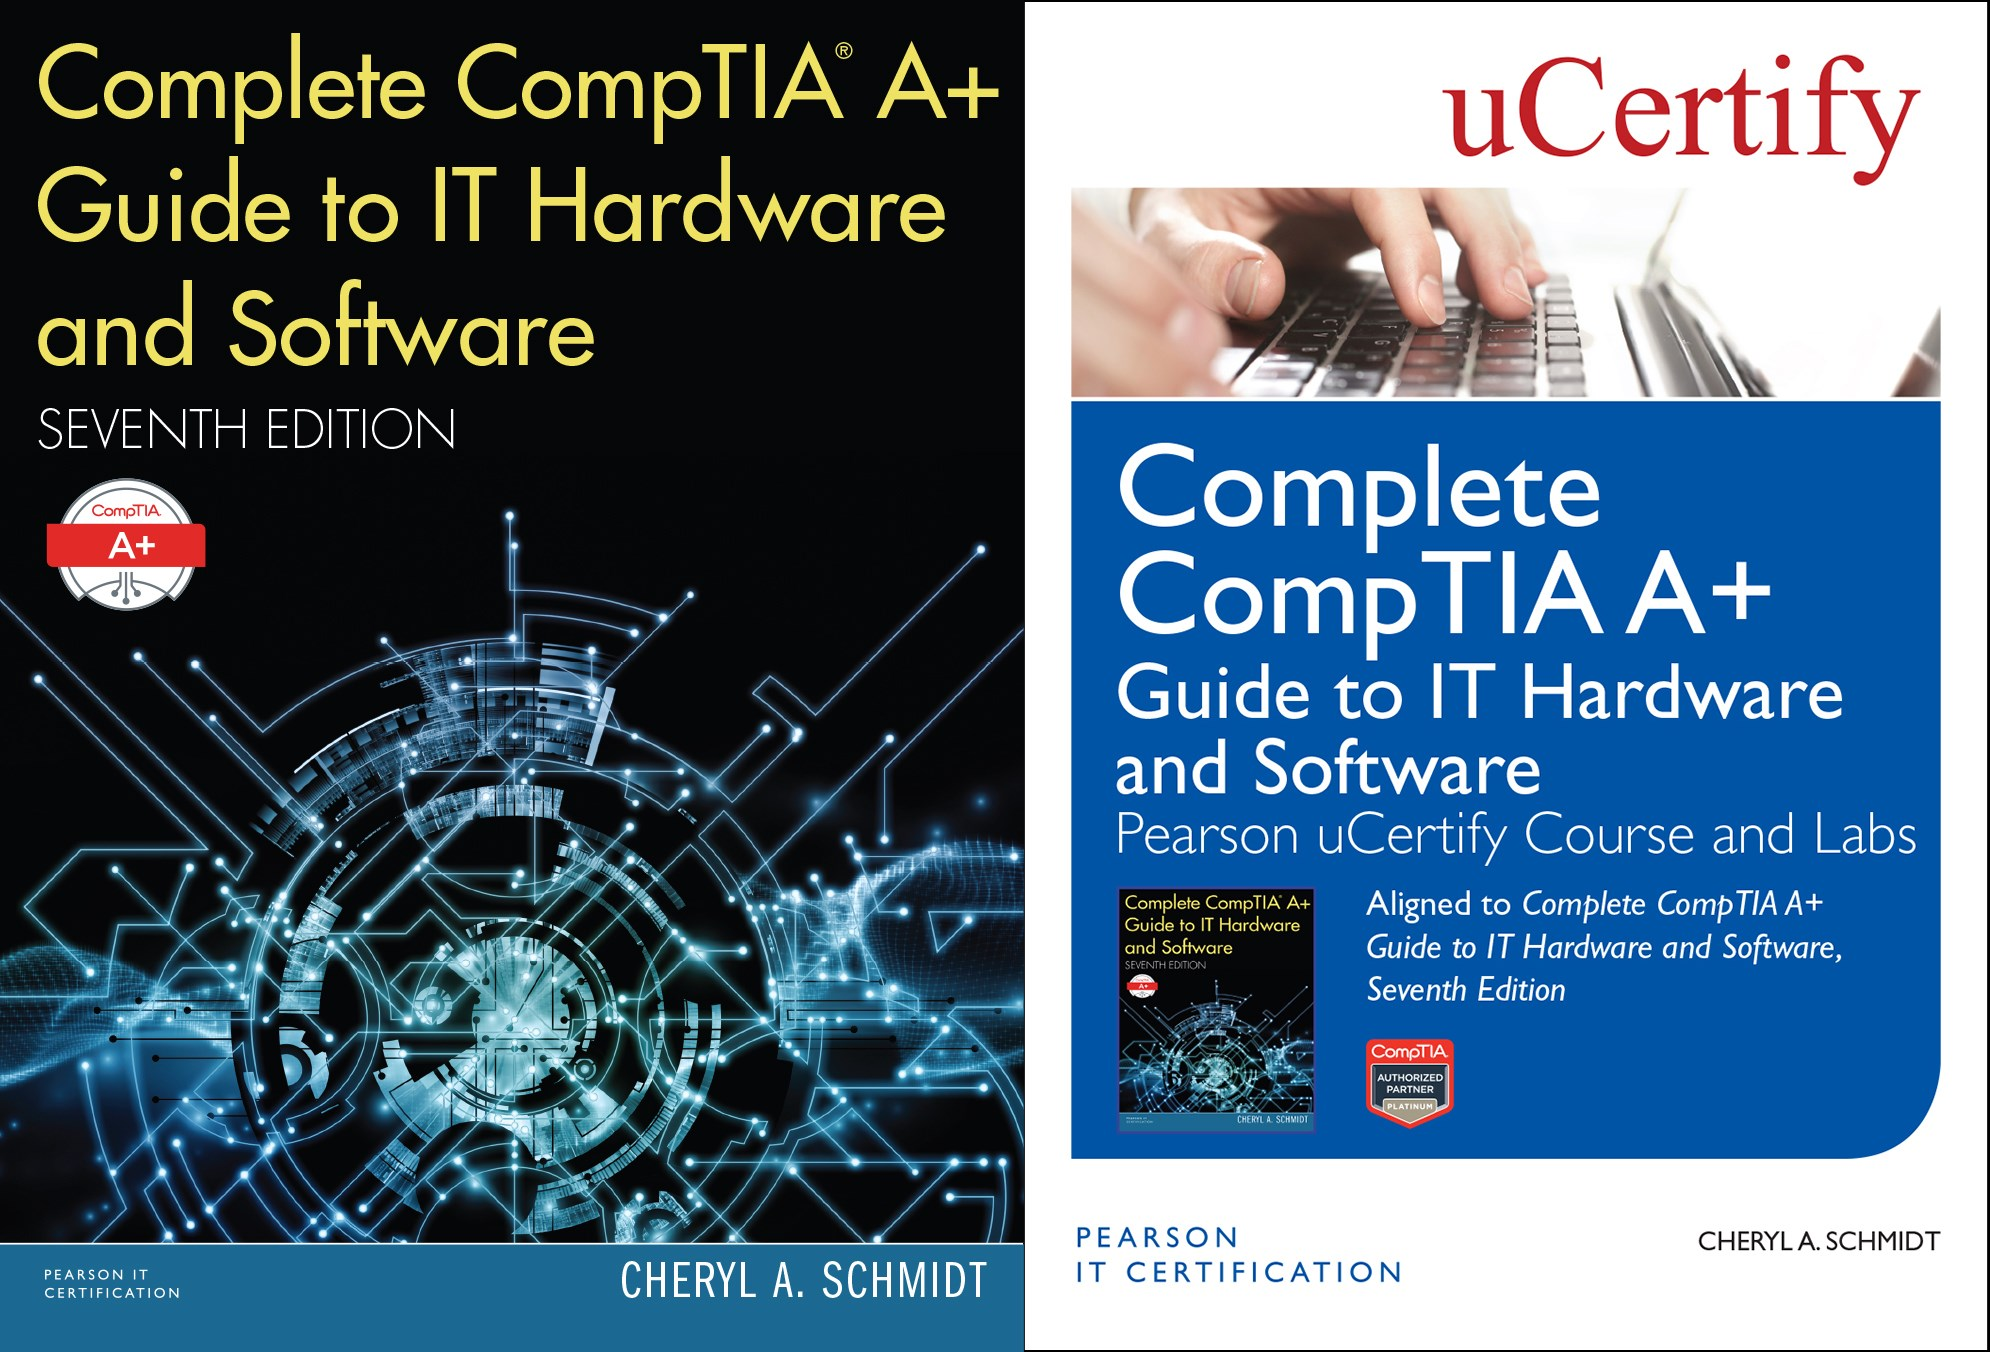 Complete CompTIA A+ Guide to IT Hardware and Software, Seventh Edition  TextBook and Pearson uCertify.